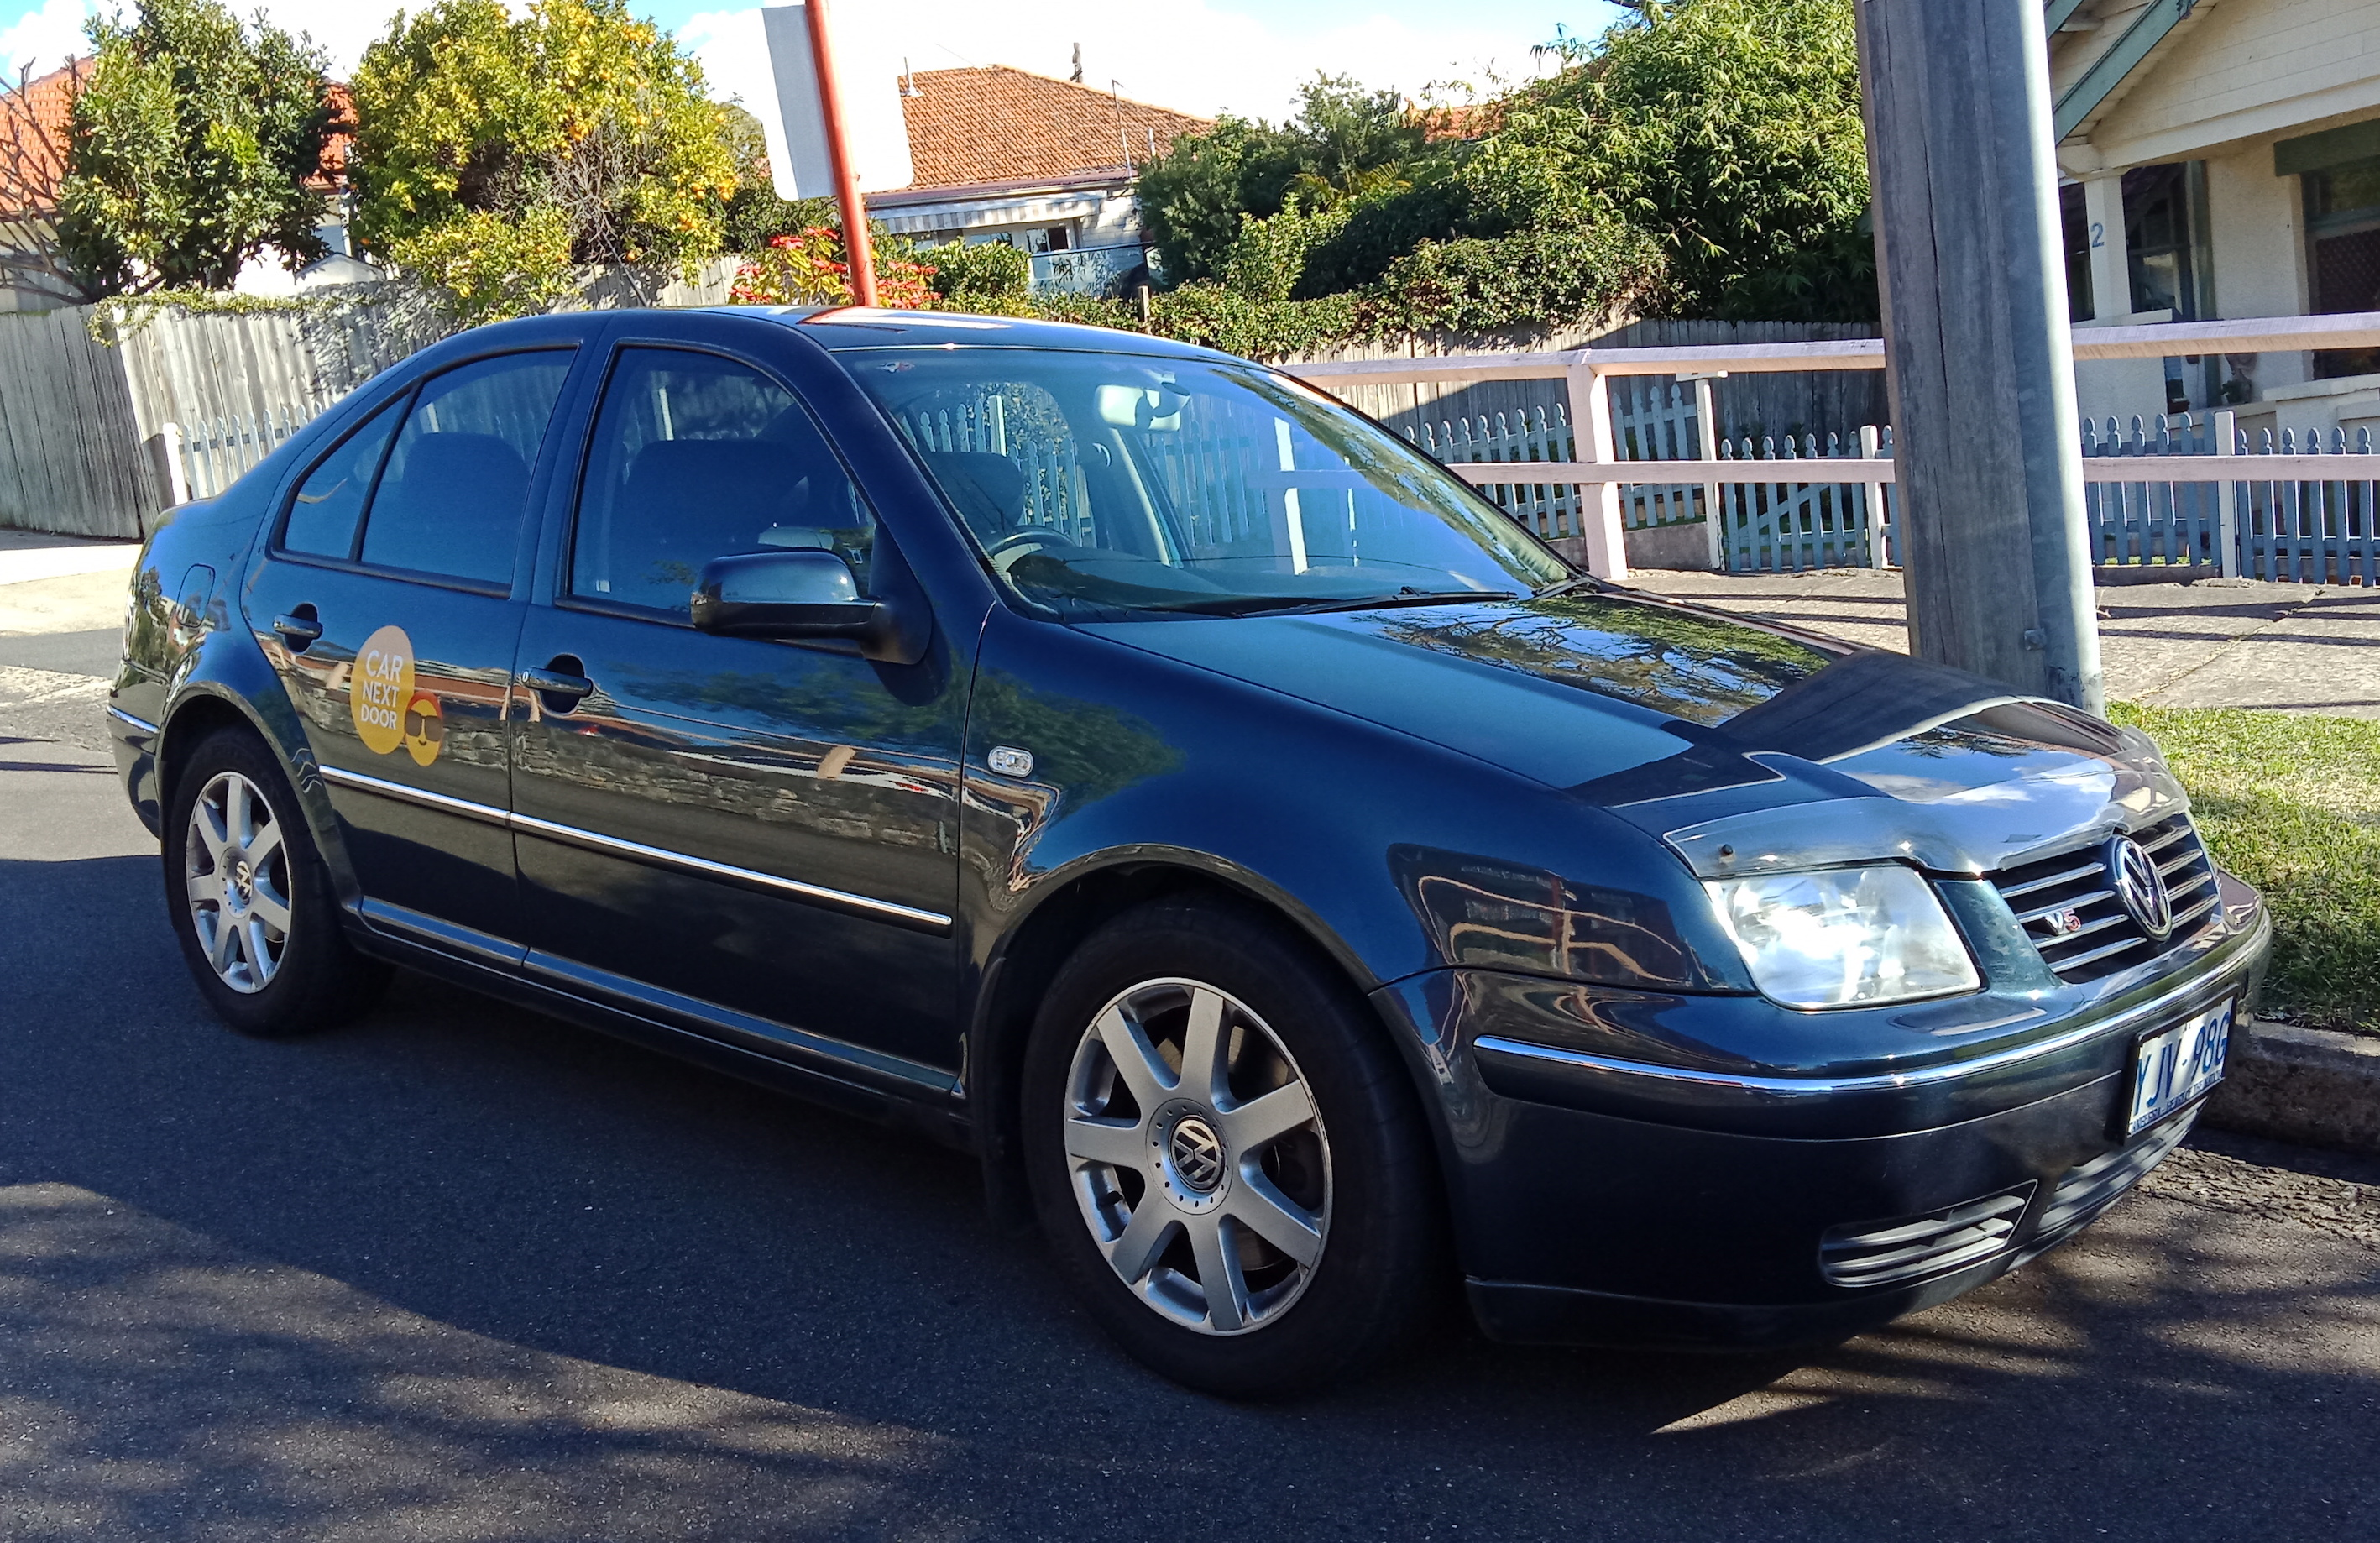 Picture of Thaao's 2005 Volkswagen Bora 2.3L V5